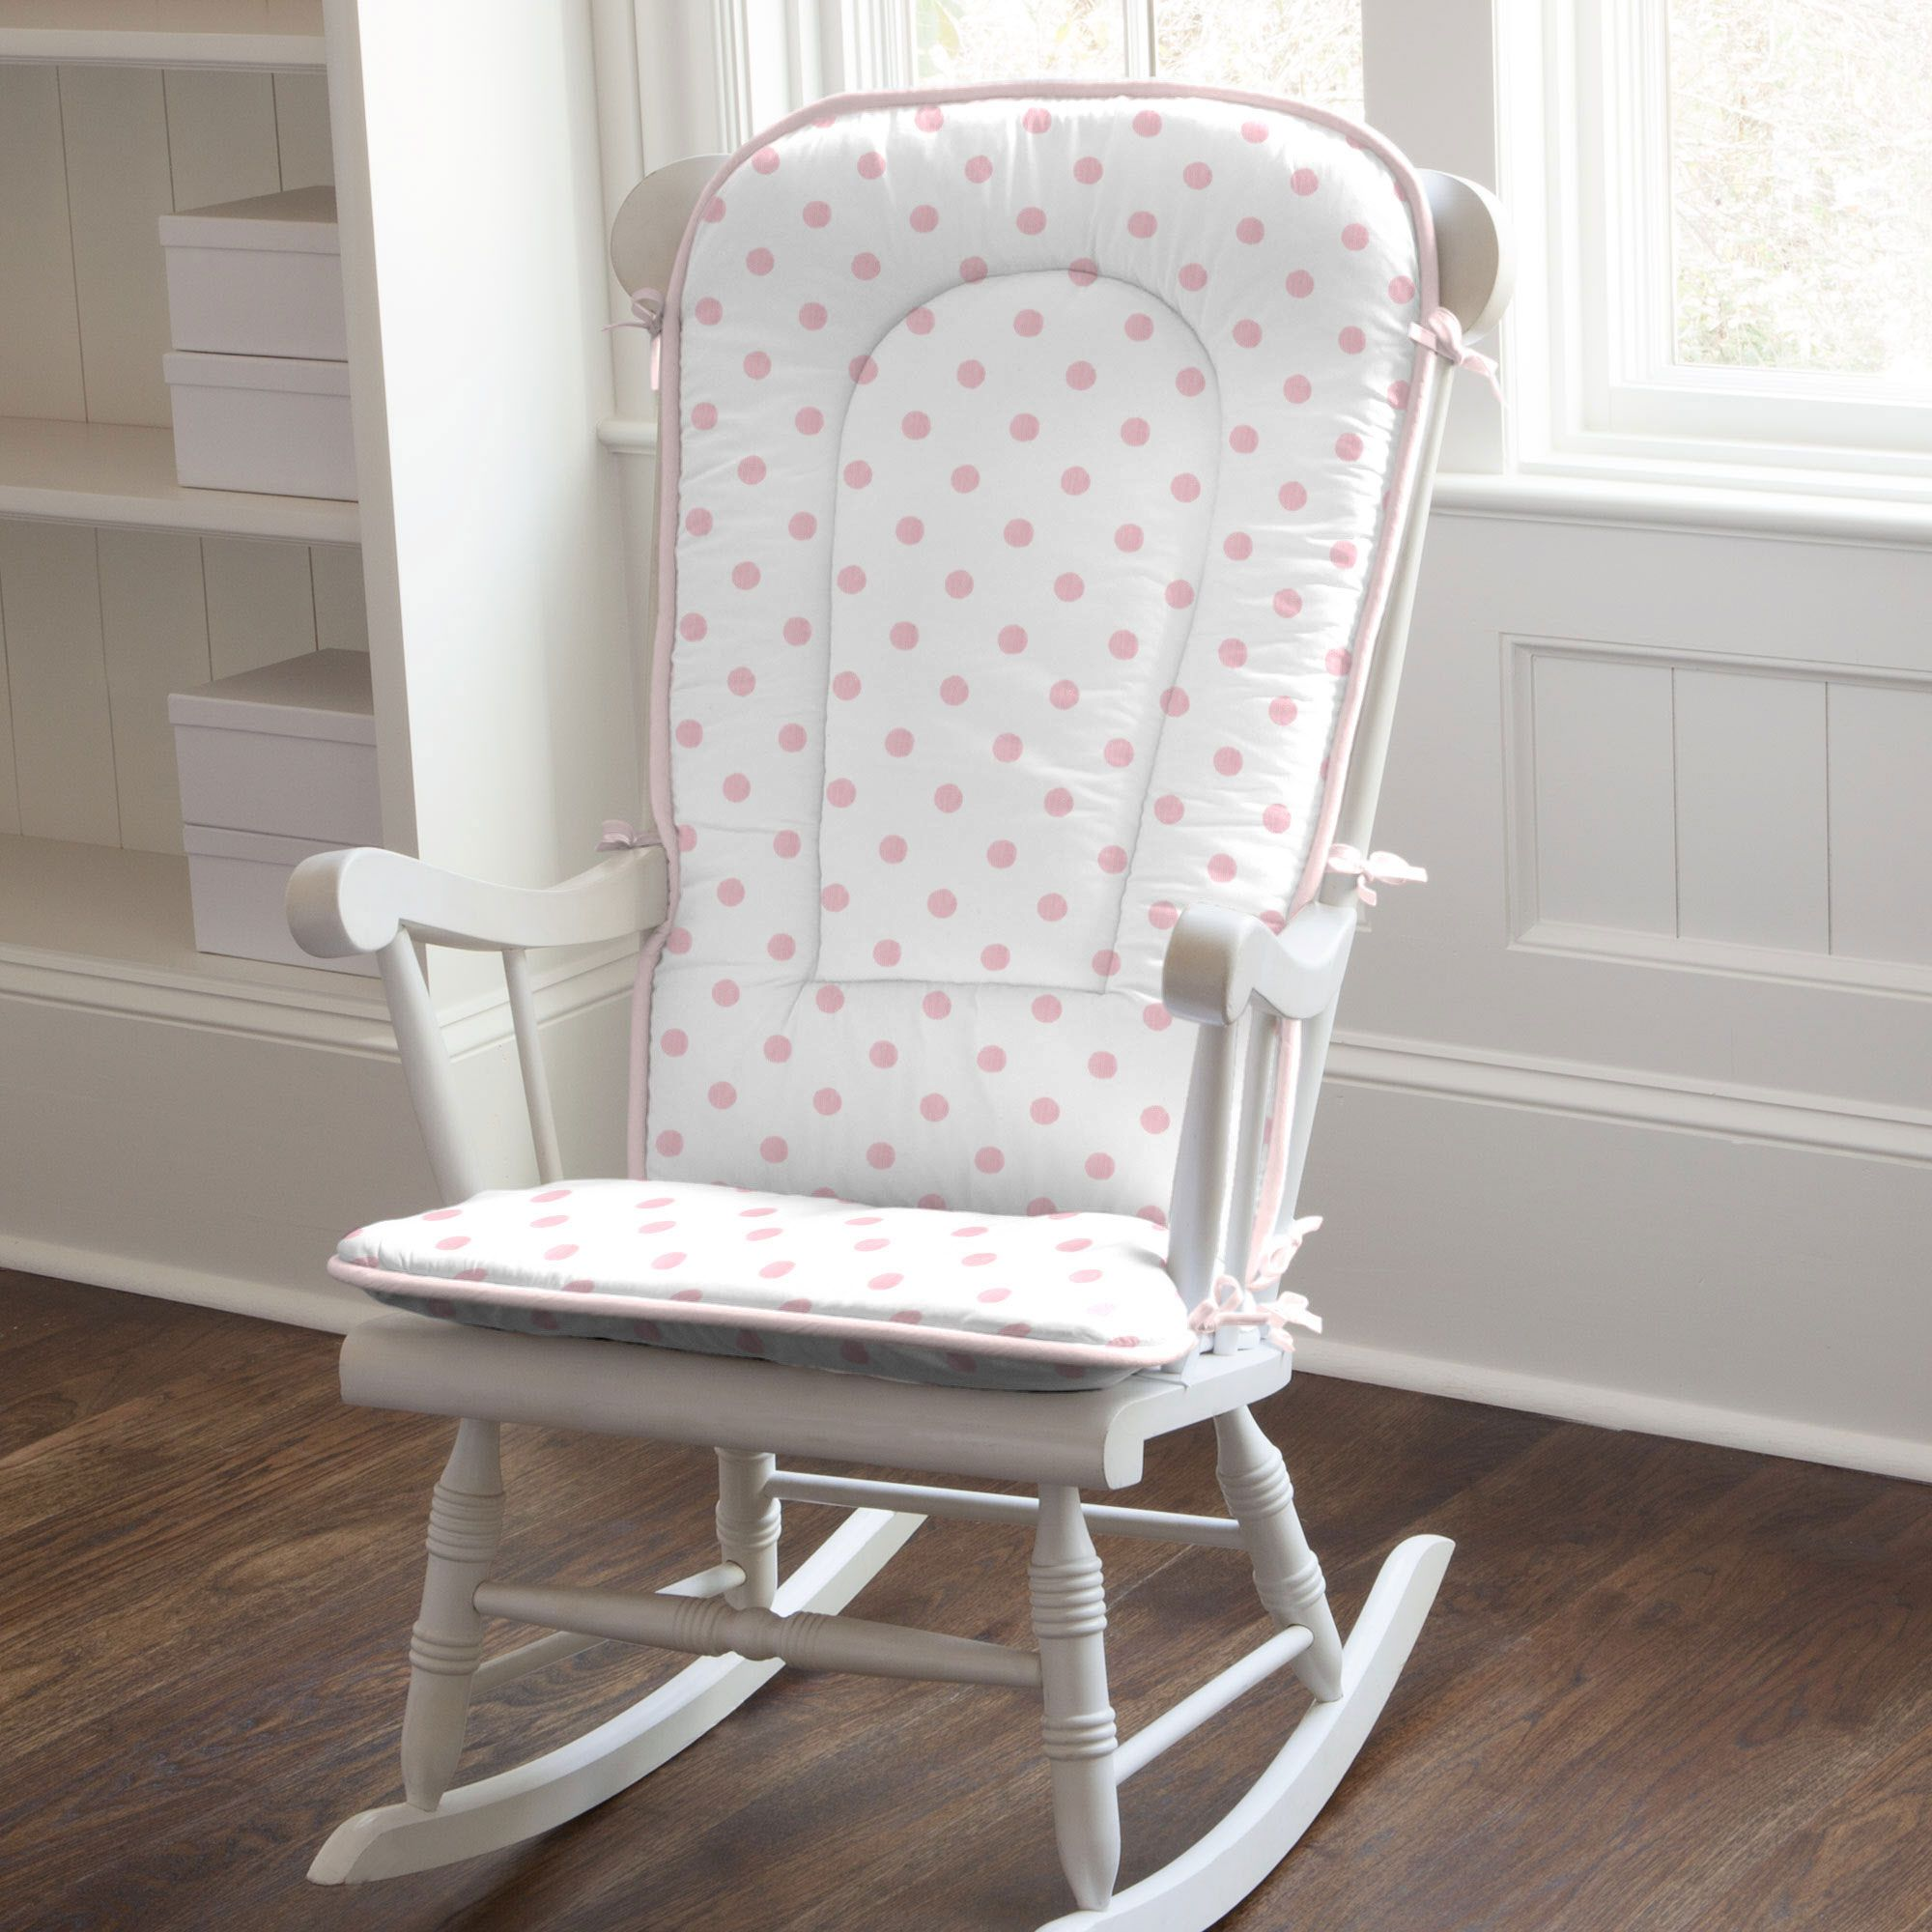 Polka Dot Rocking Chair Cushions Potty Chairs For Adults White And Pink Pad Carouseldesigns